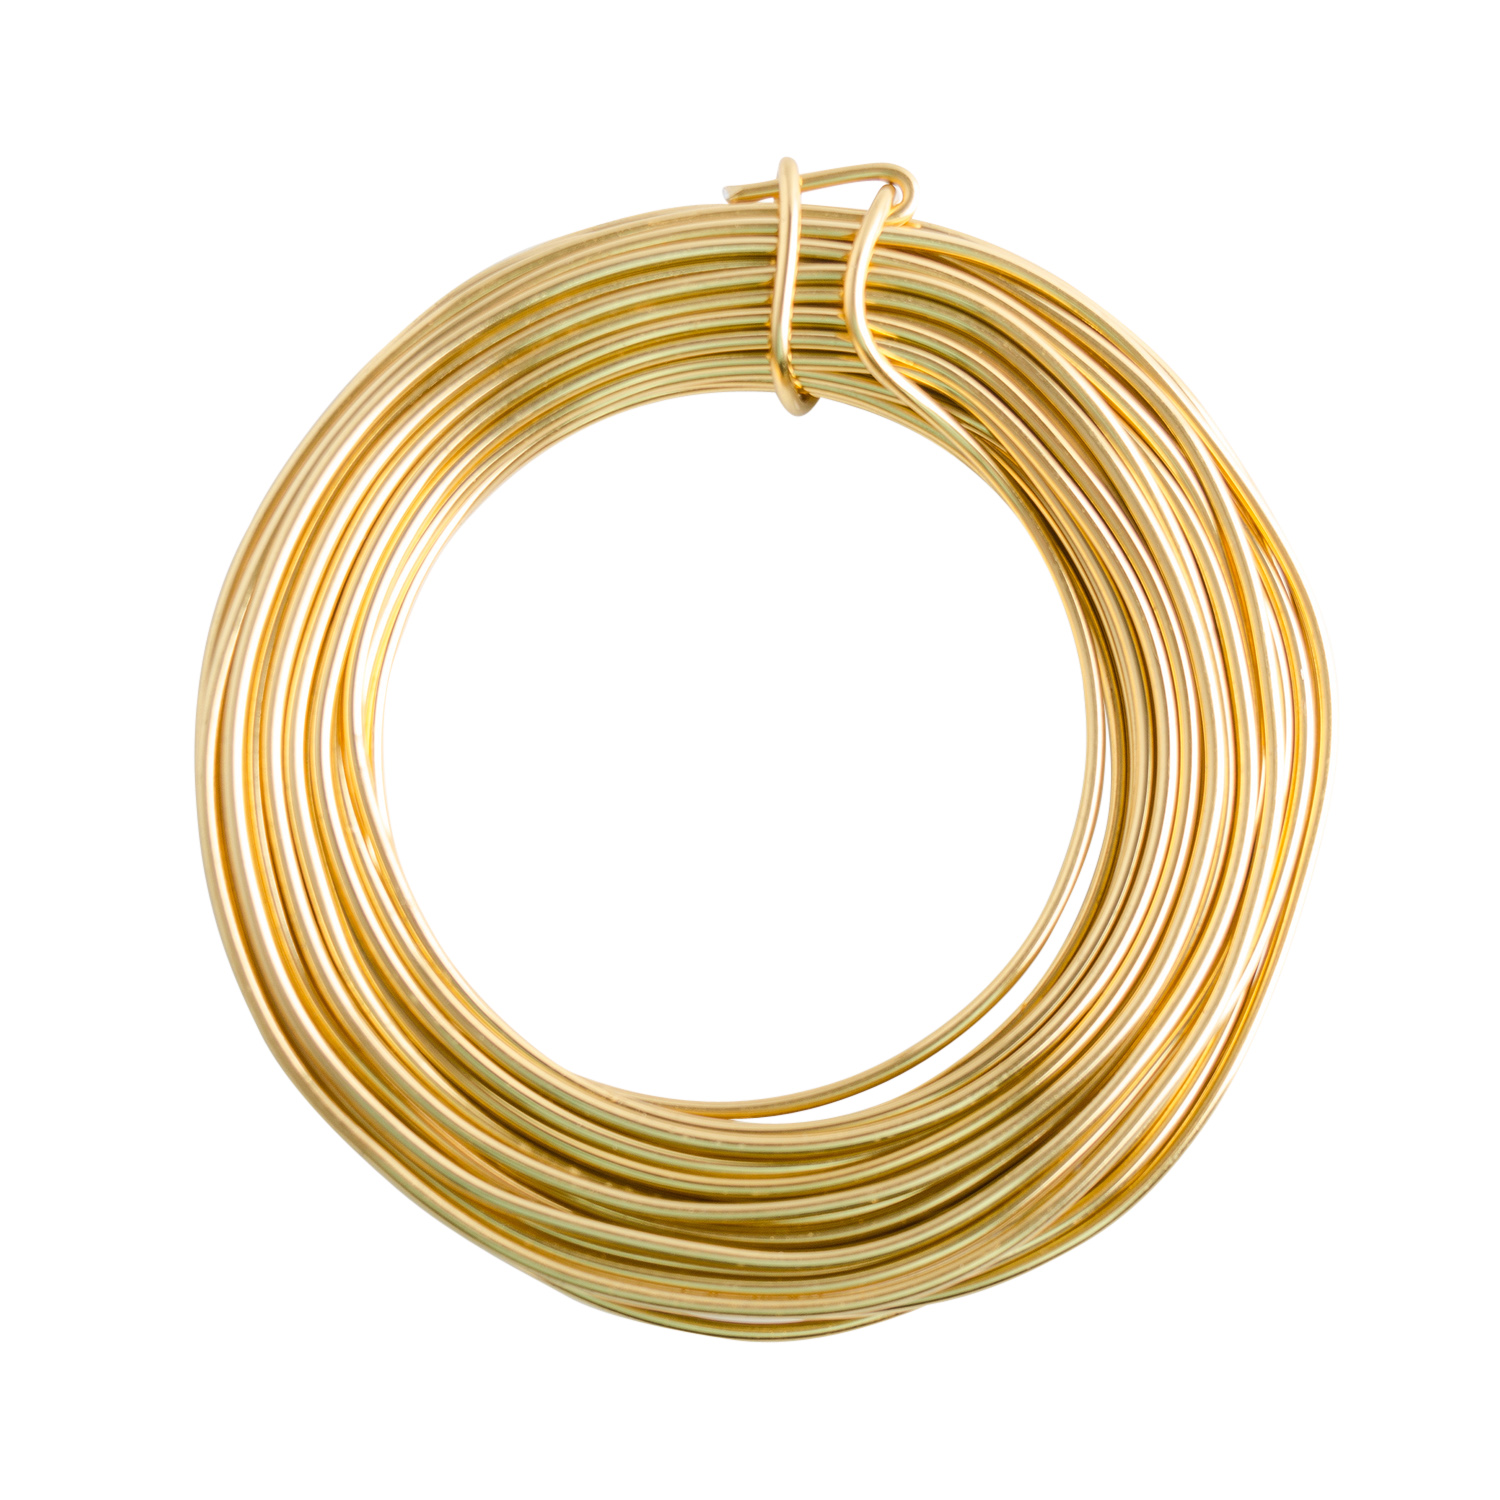 16 Gauge Gold Enameled Aluminum Wire - 100FT: Wire Jewelry | Wire ...